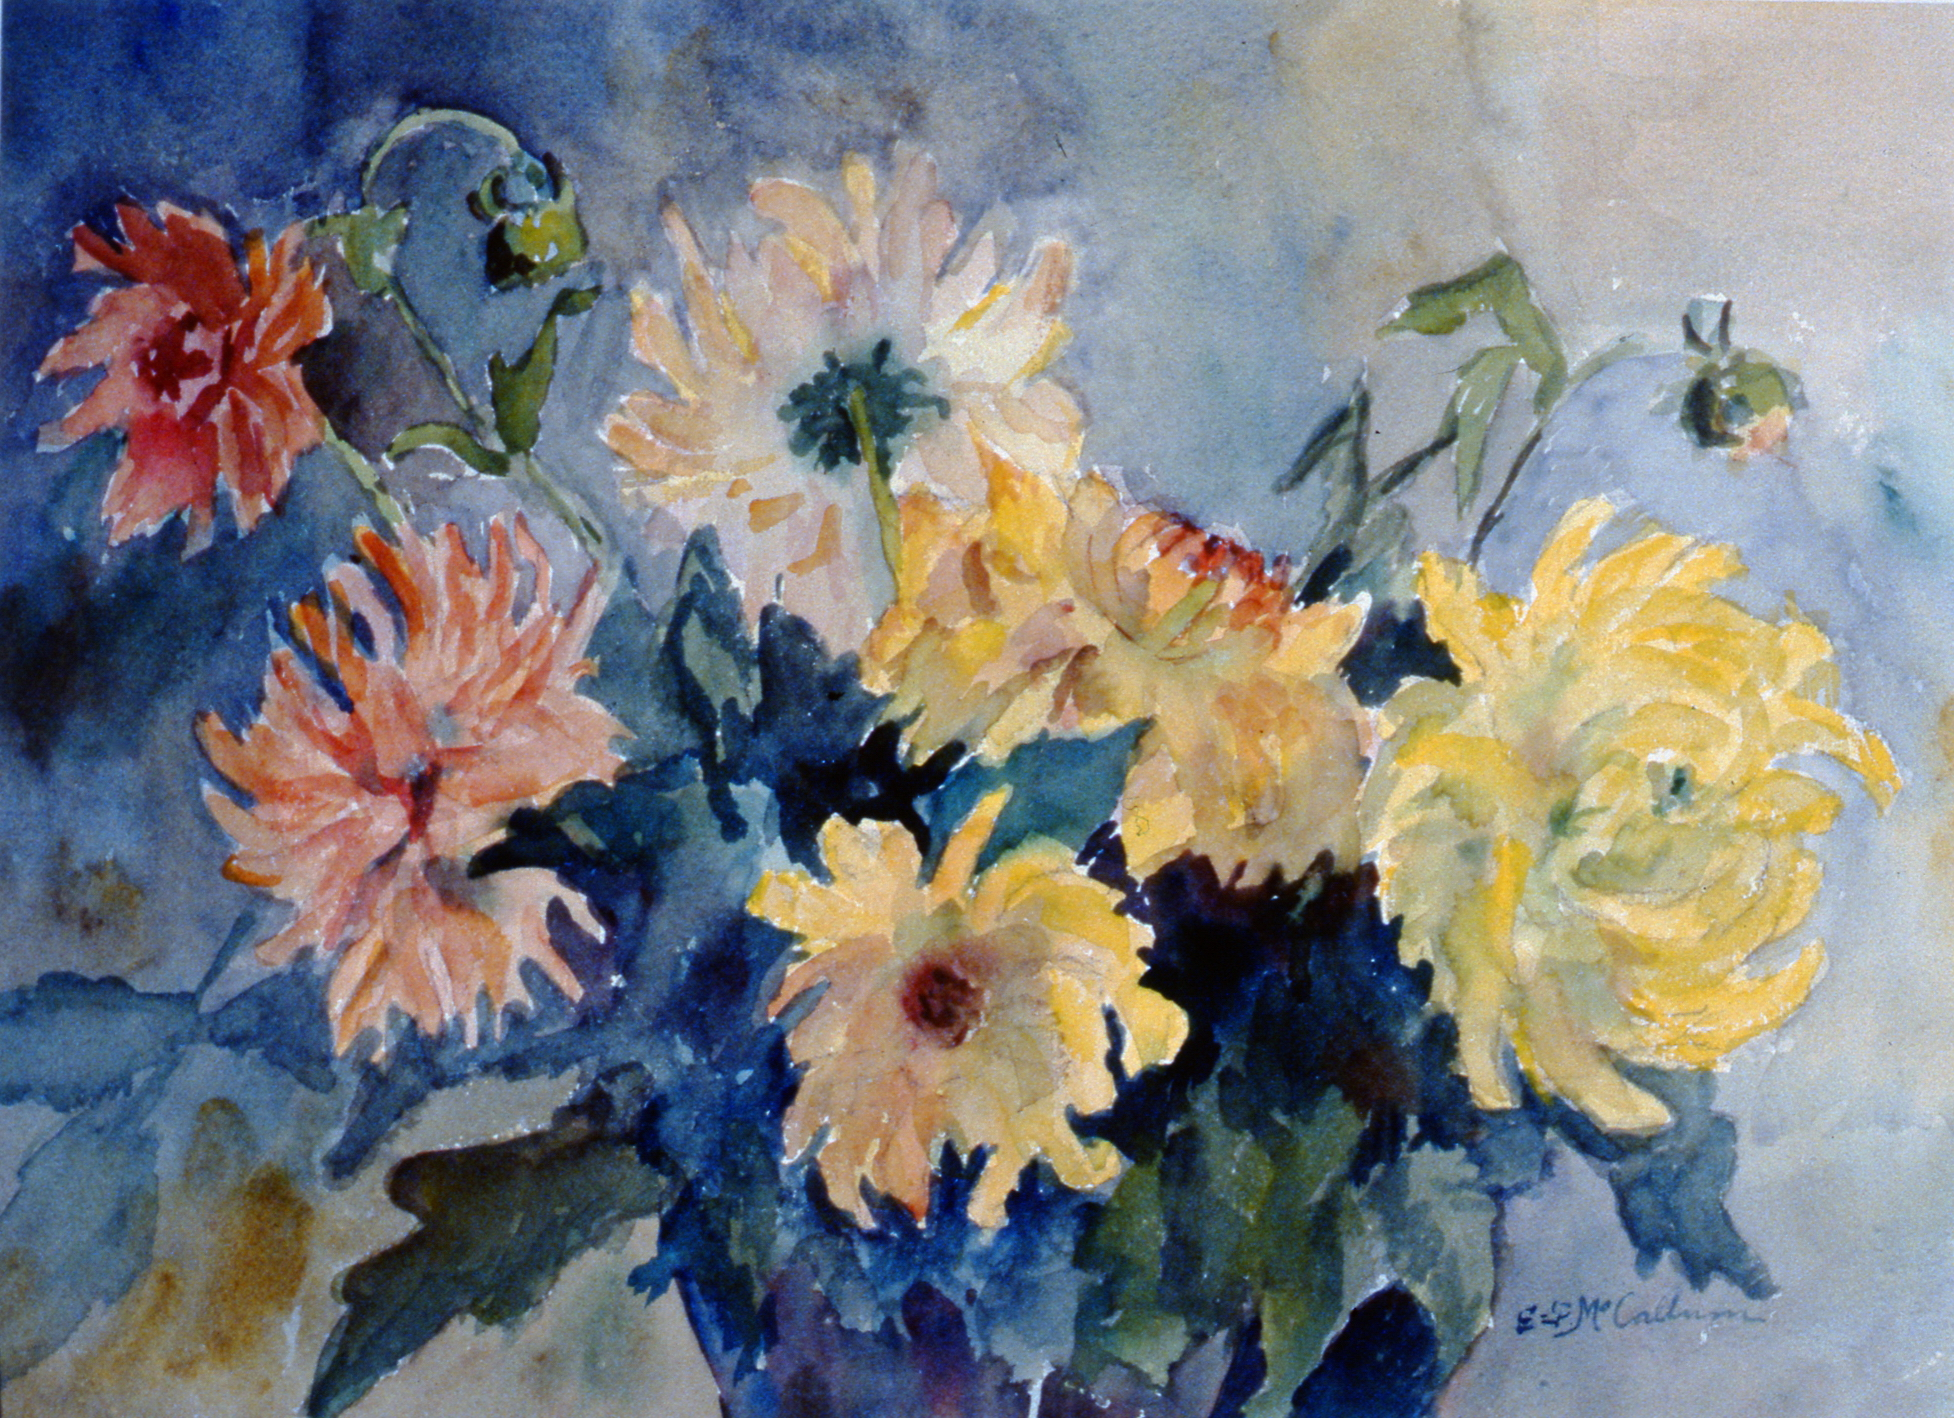 Flowers,  n.d., Ethel McCallum, watercolour, 25.4 cm x 30.5 cm, 2001.04.18,  gift of the Estate of Ethel & Maurice Joslin